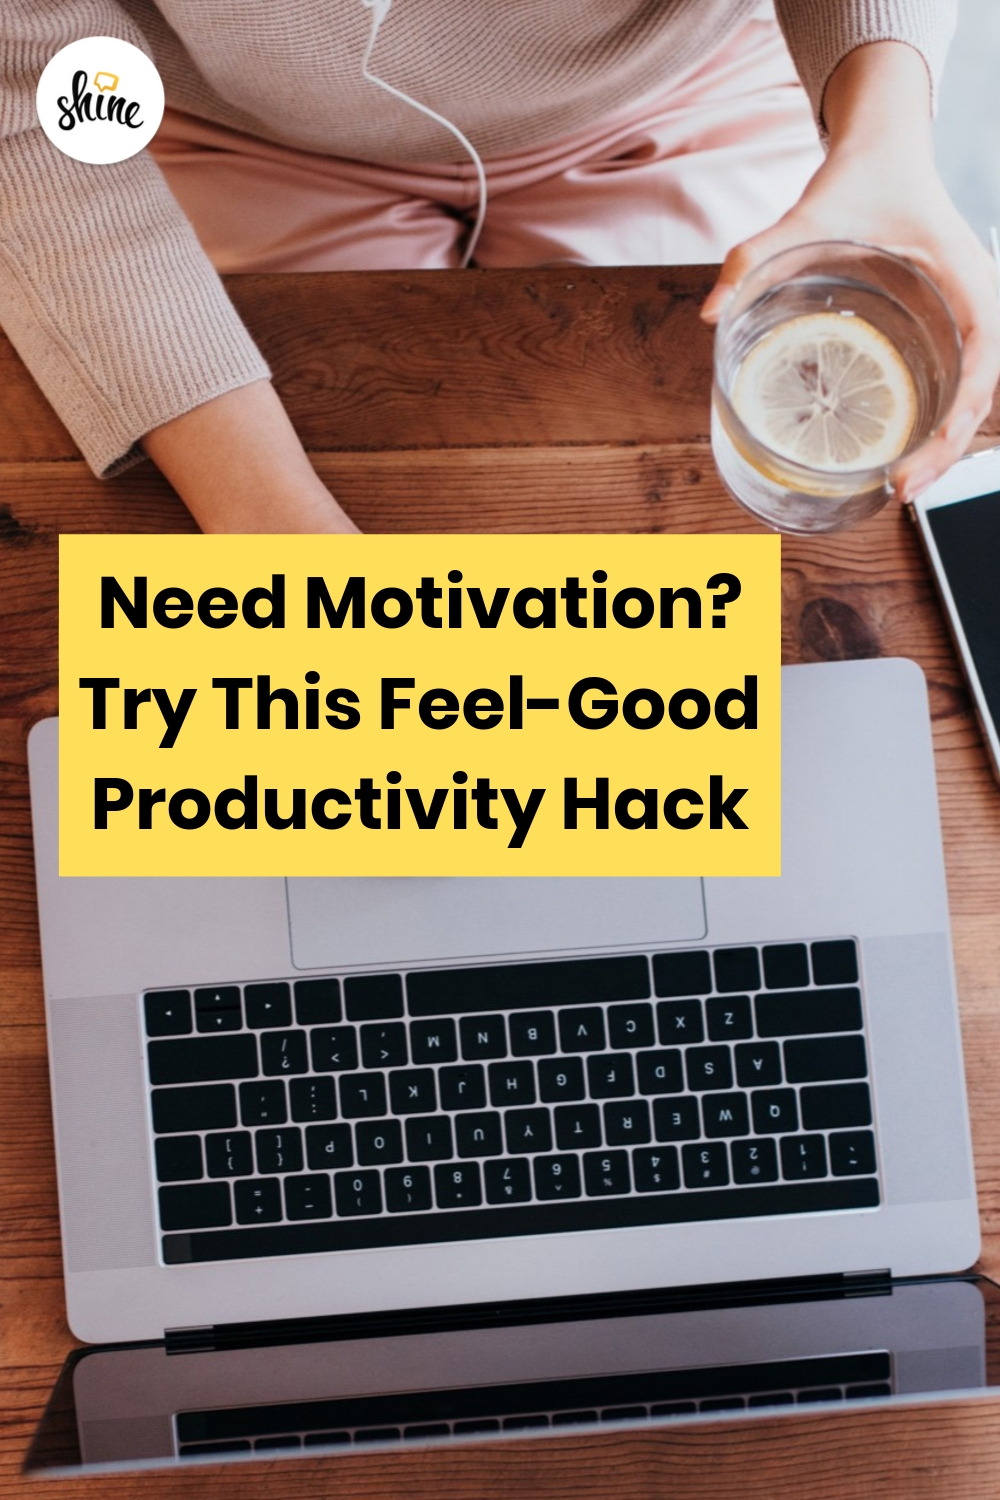 Try this Feel-Good Productivity Hack